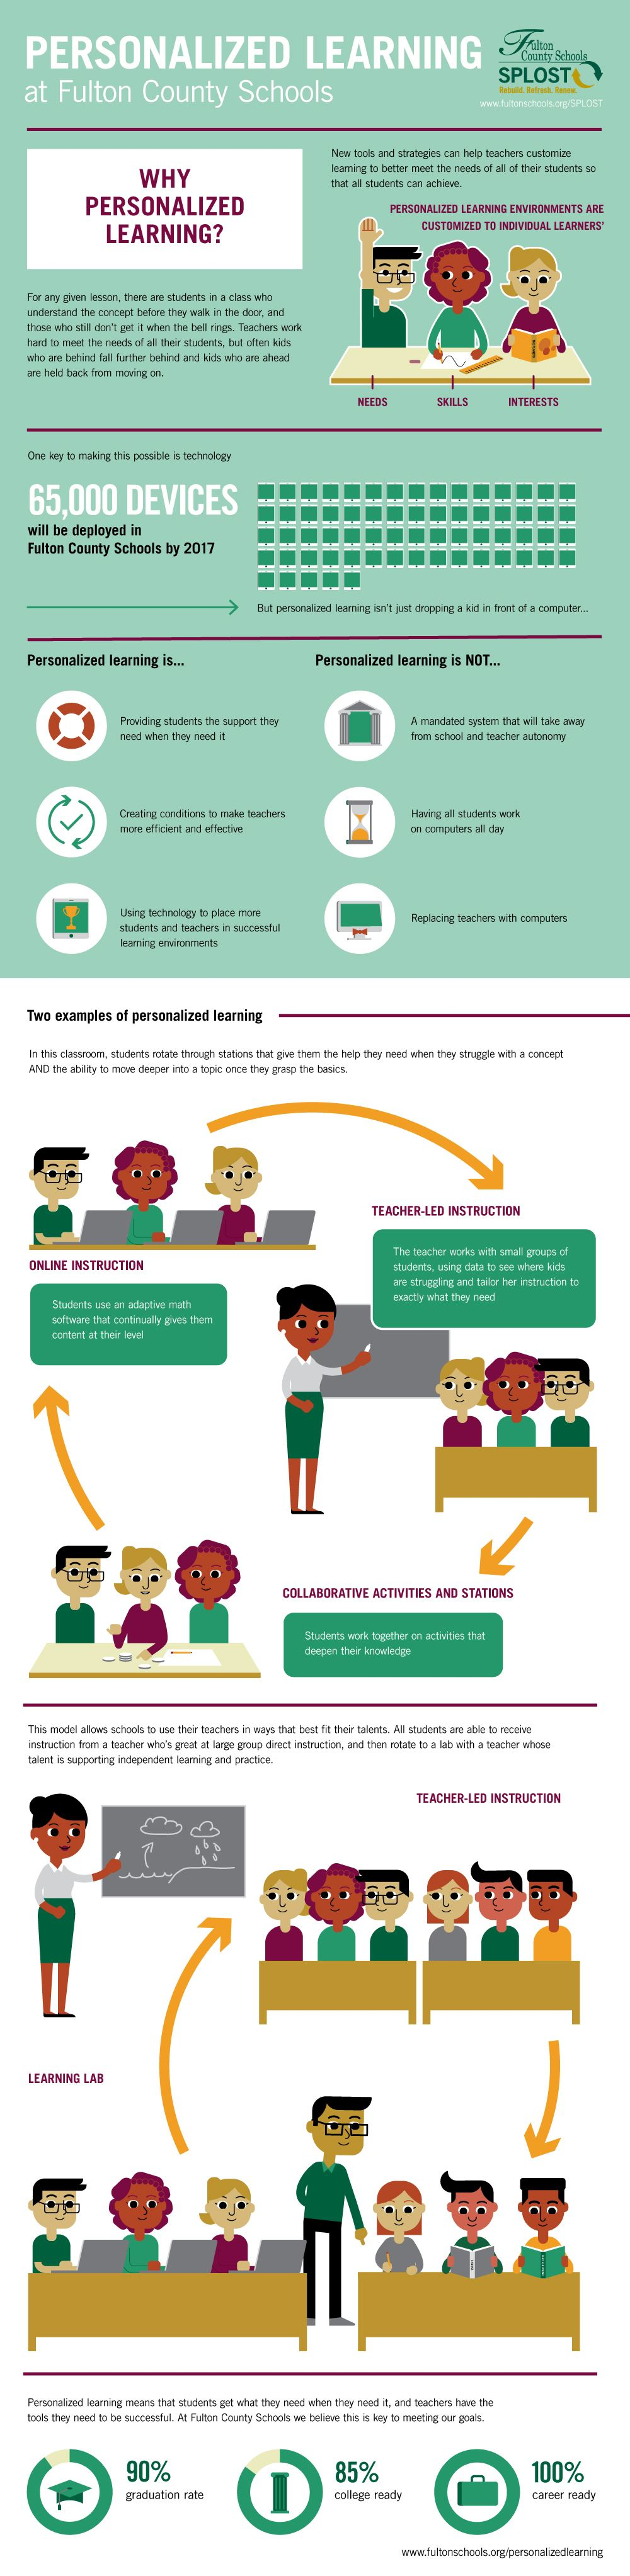 Digital Learning Infographic